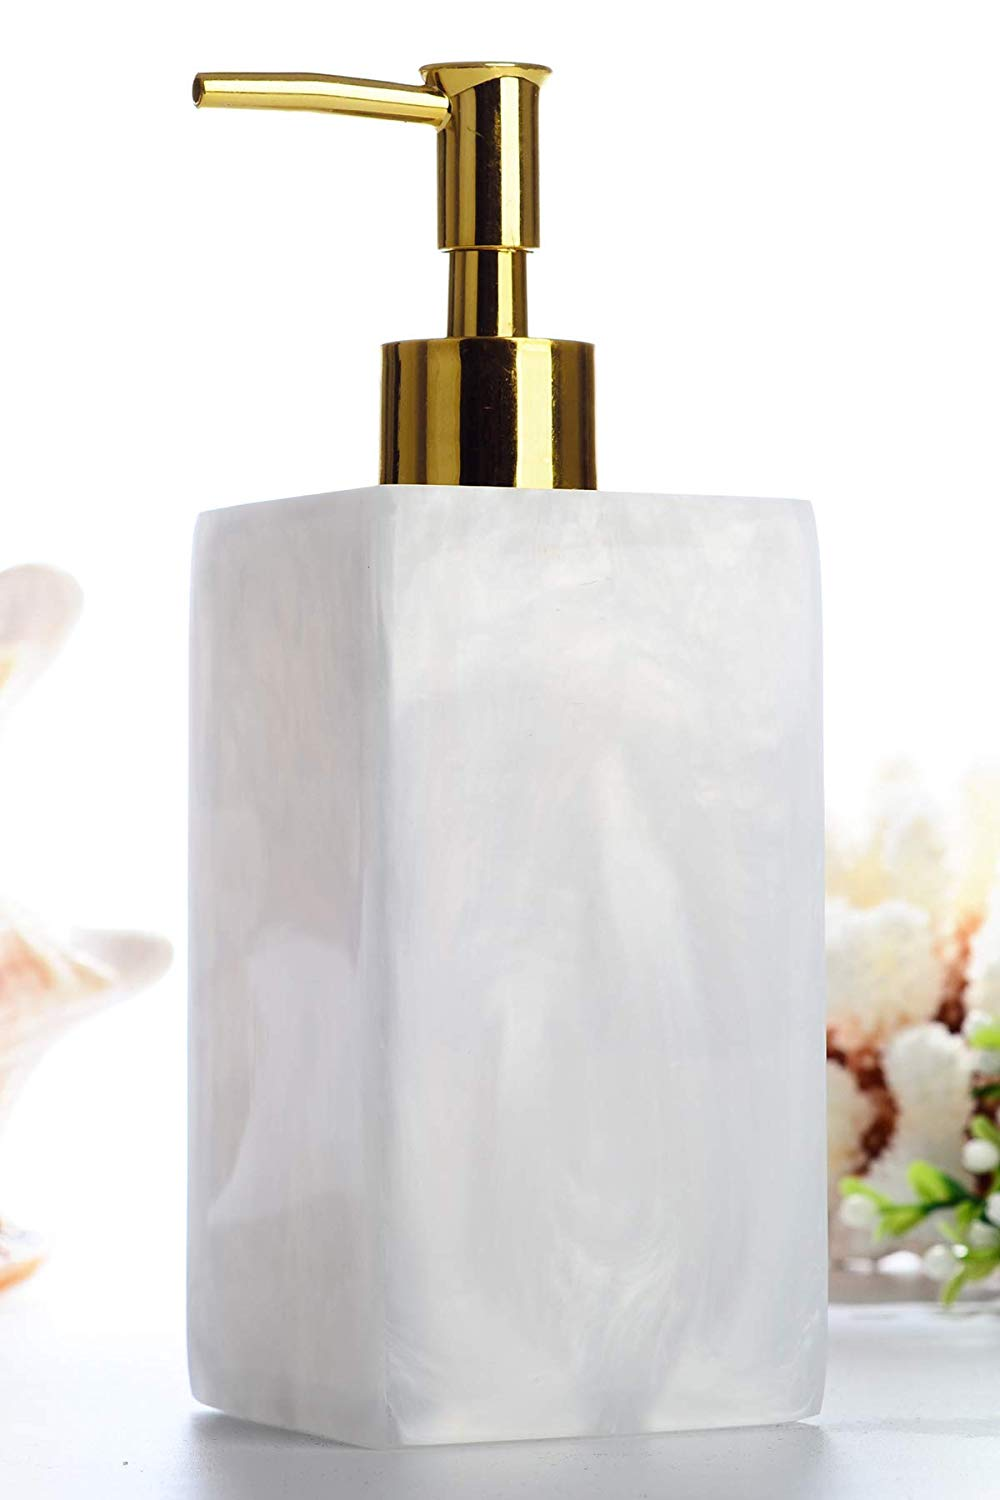 Soap Dispenser Bottle, Hand Soap Dispenser Pump Bottle for Essential Oils, Lotions, Liquid Soaps, Shampoo Shower Gel Hand Lotion Bottle for Kitchen and Bathroom(Gold)